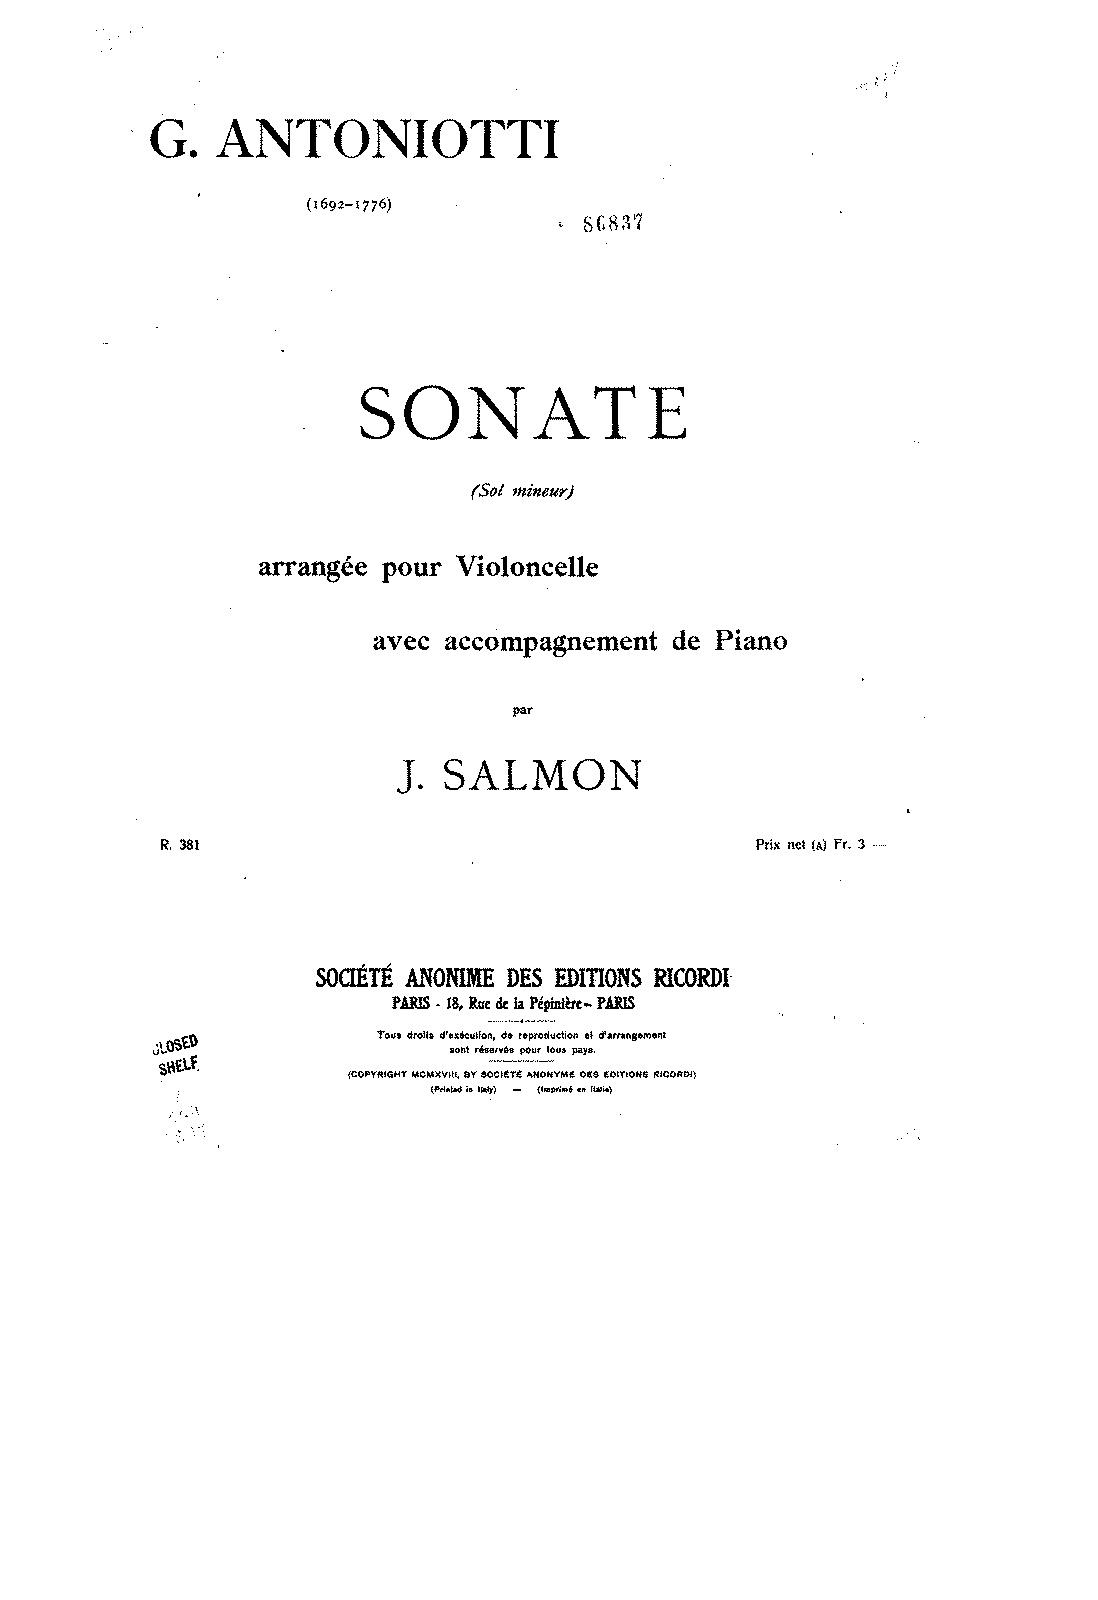 PMLP141680-Antoniotti - Sonata G minor for Cello and Piano (Salmon).pdf